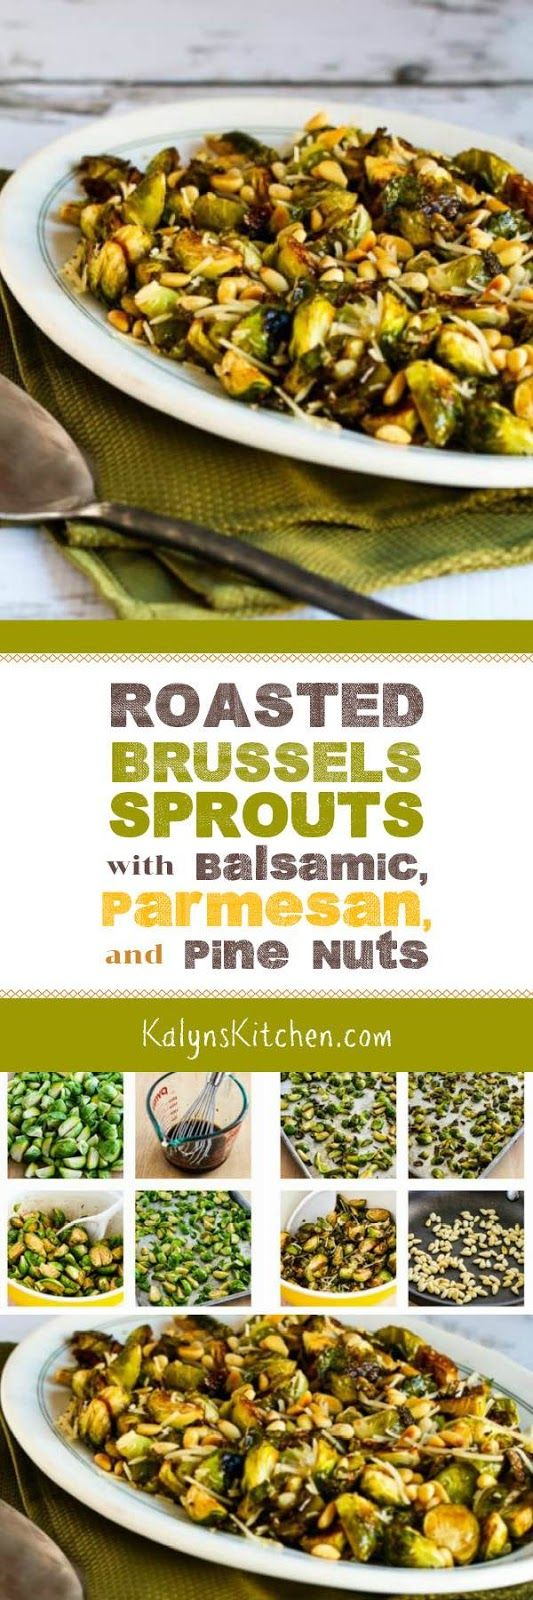 Your guests will swoon over Roasted Brussels Sprouts Recipe with Balsamic…